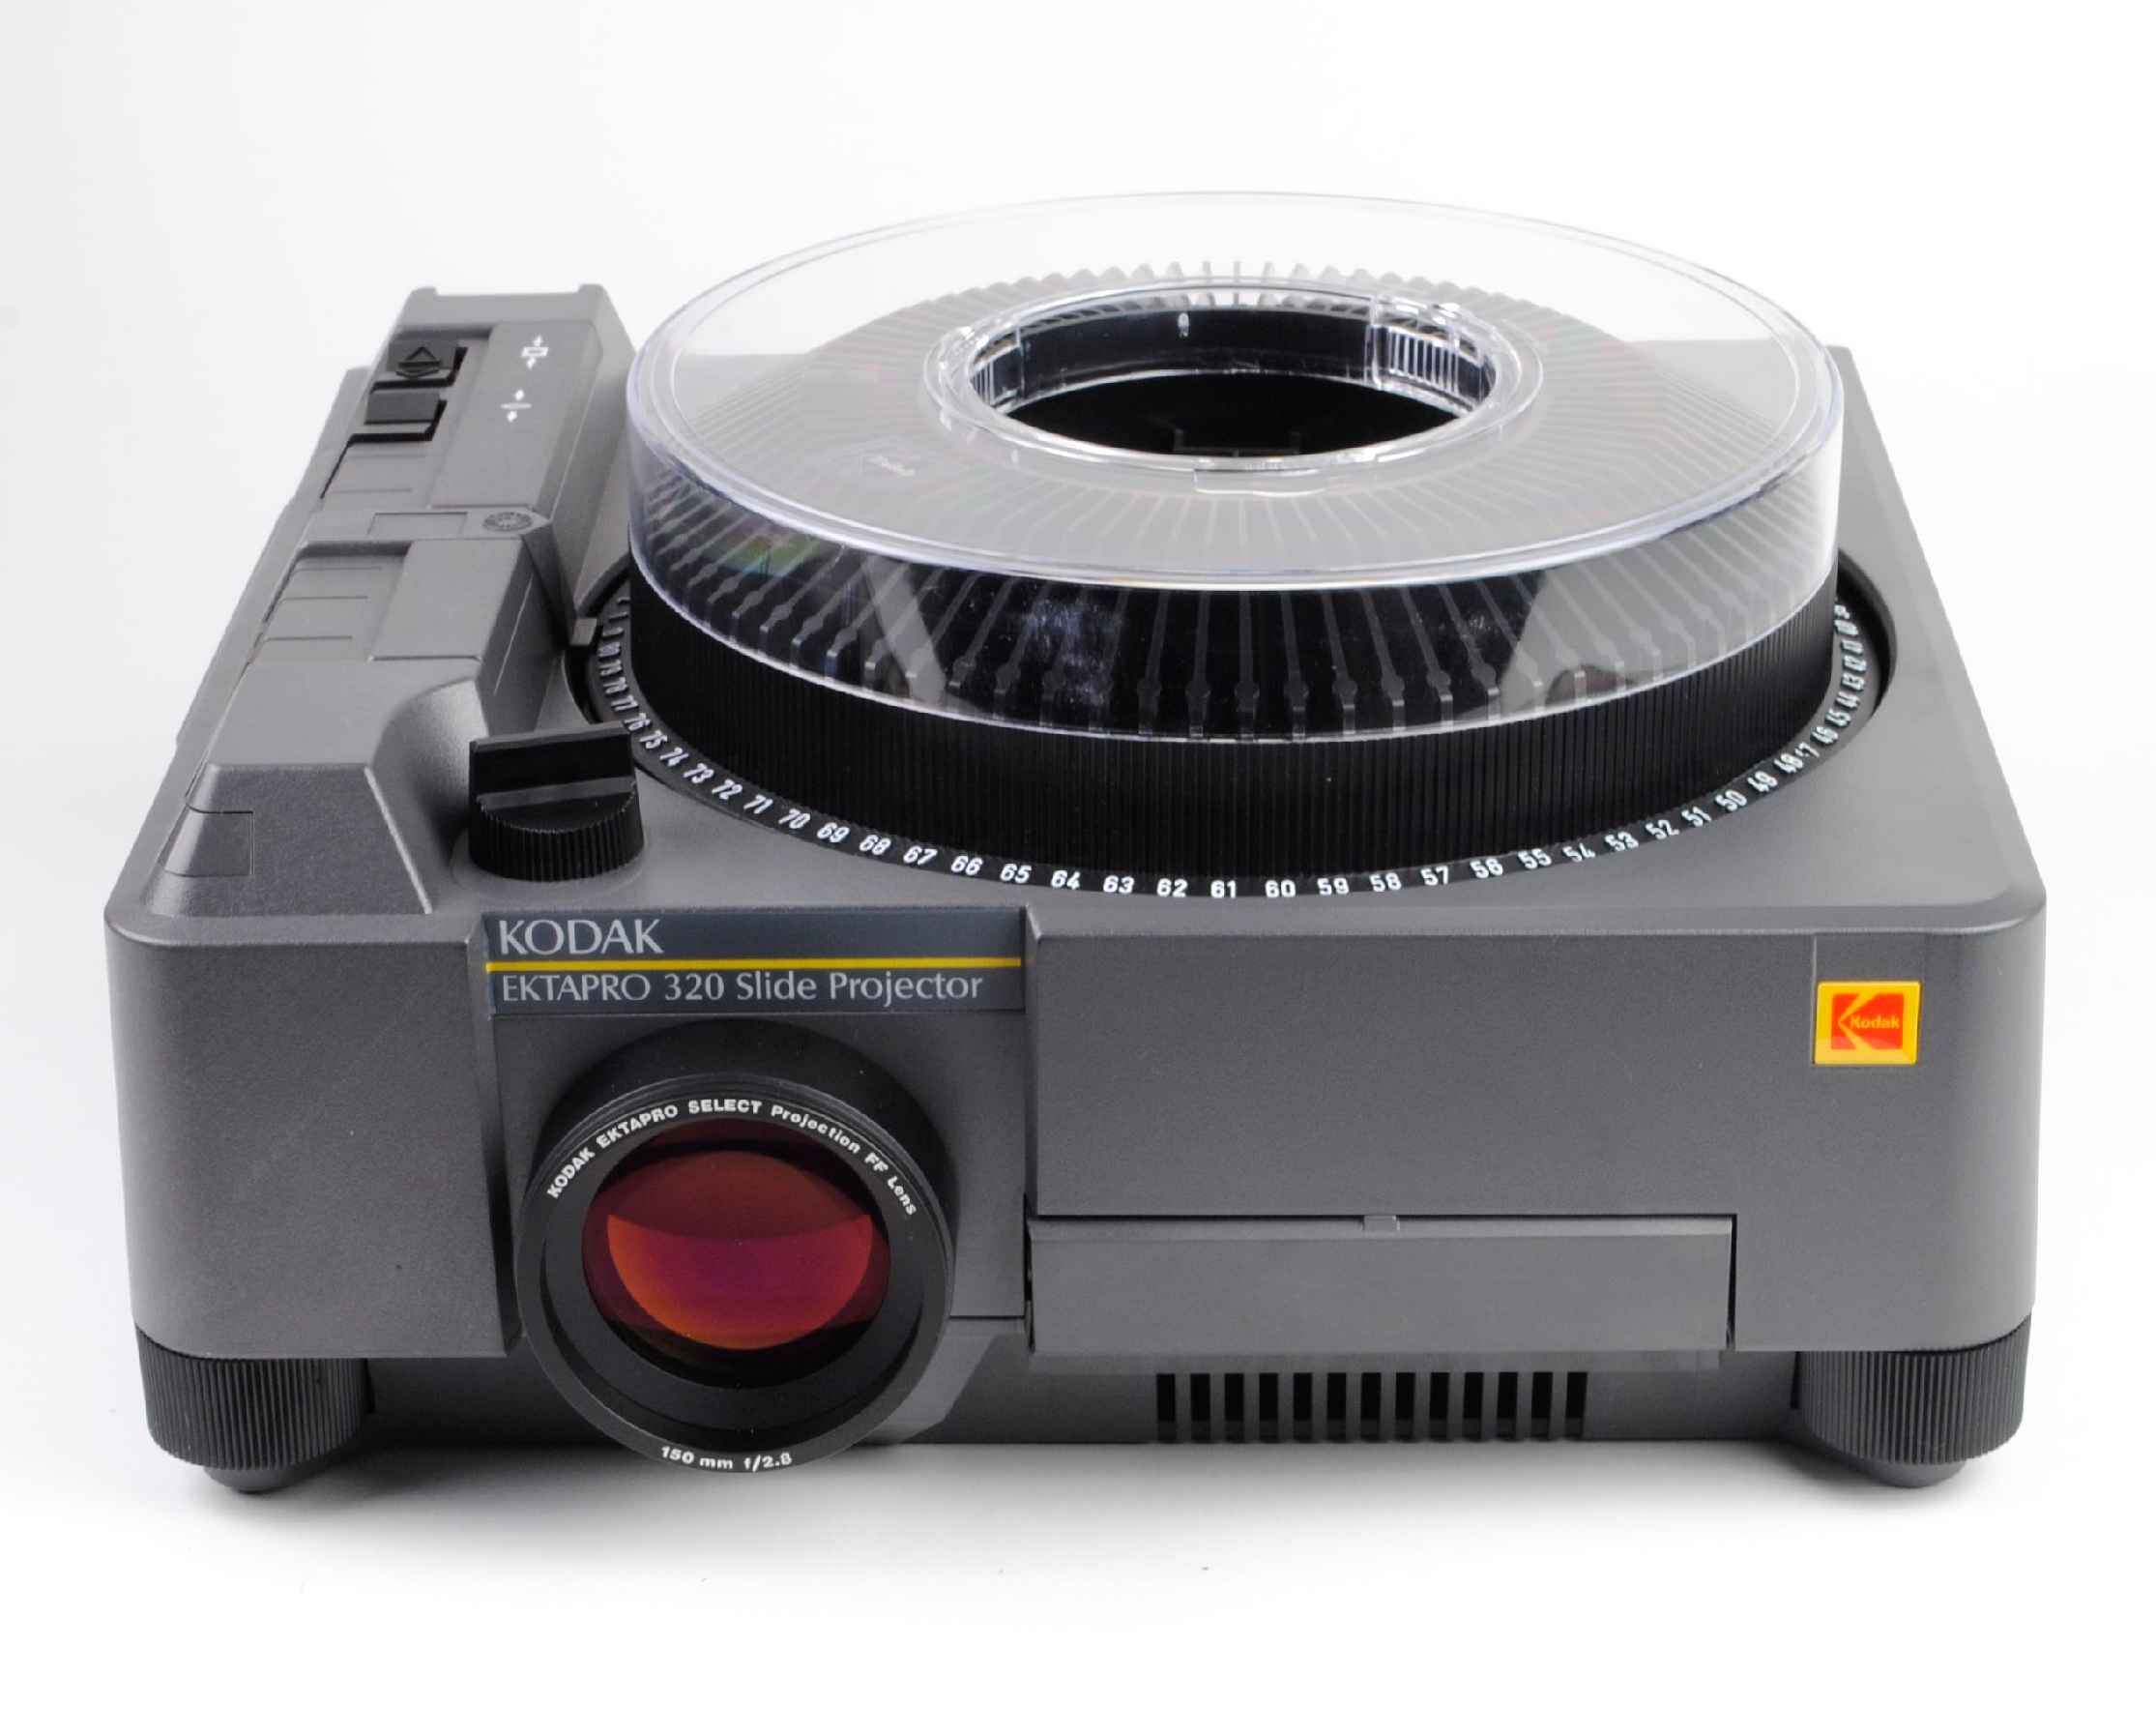 kodak ektapro 320 slide projectors spare parts and information rh van eck net Kodak Projector Lamps Kodak Projector Bulbs